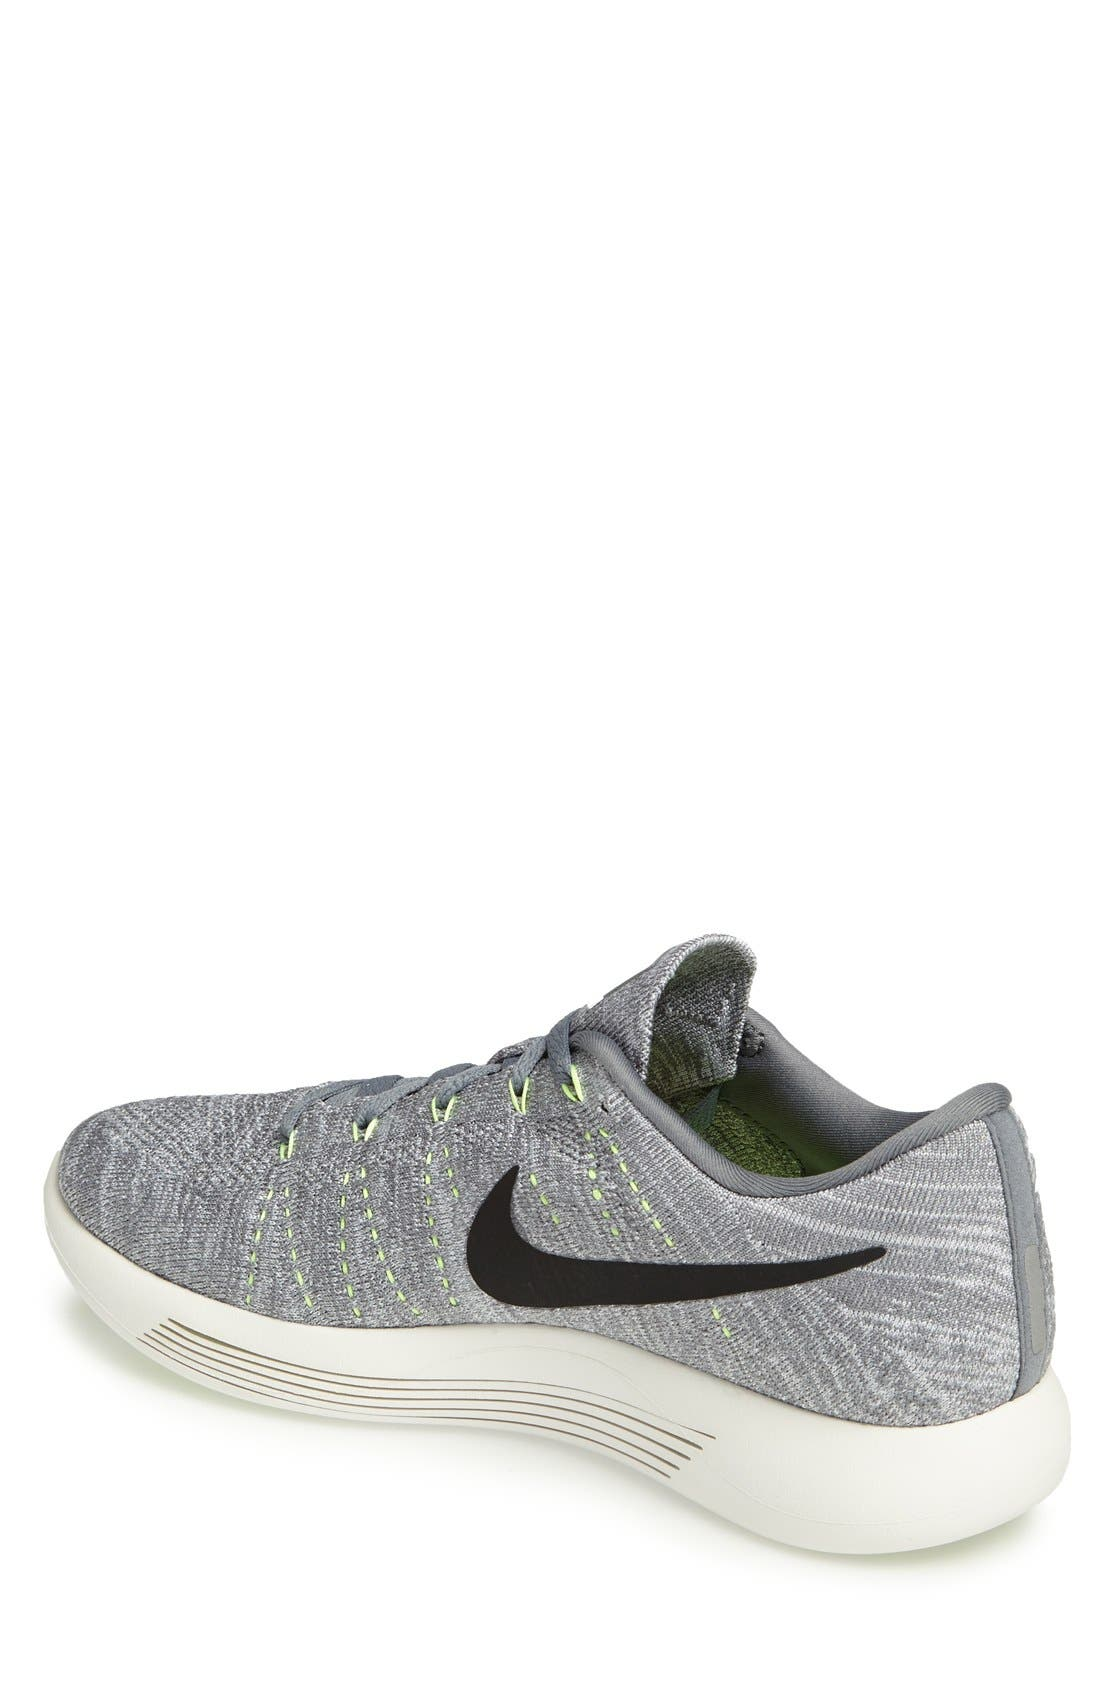 Alternate Image 2  - Nike 'LunarEpic Low Flyknit' Running Shoe (Men)